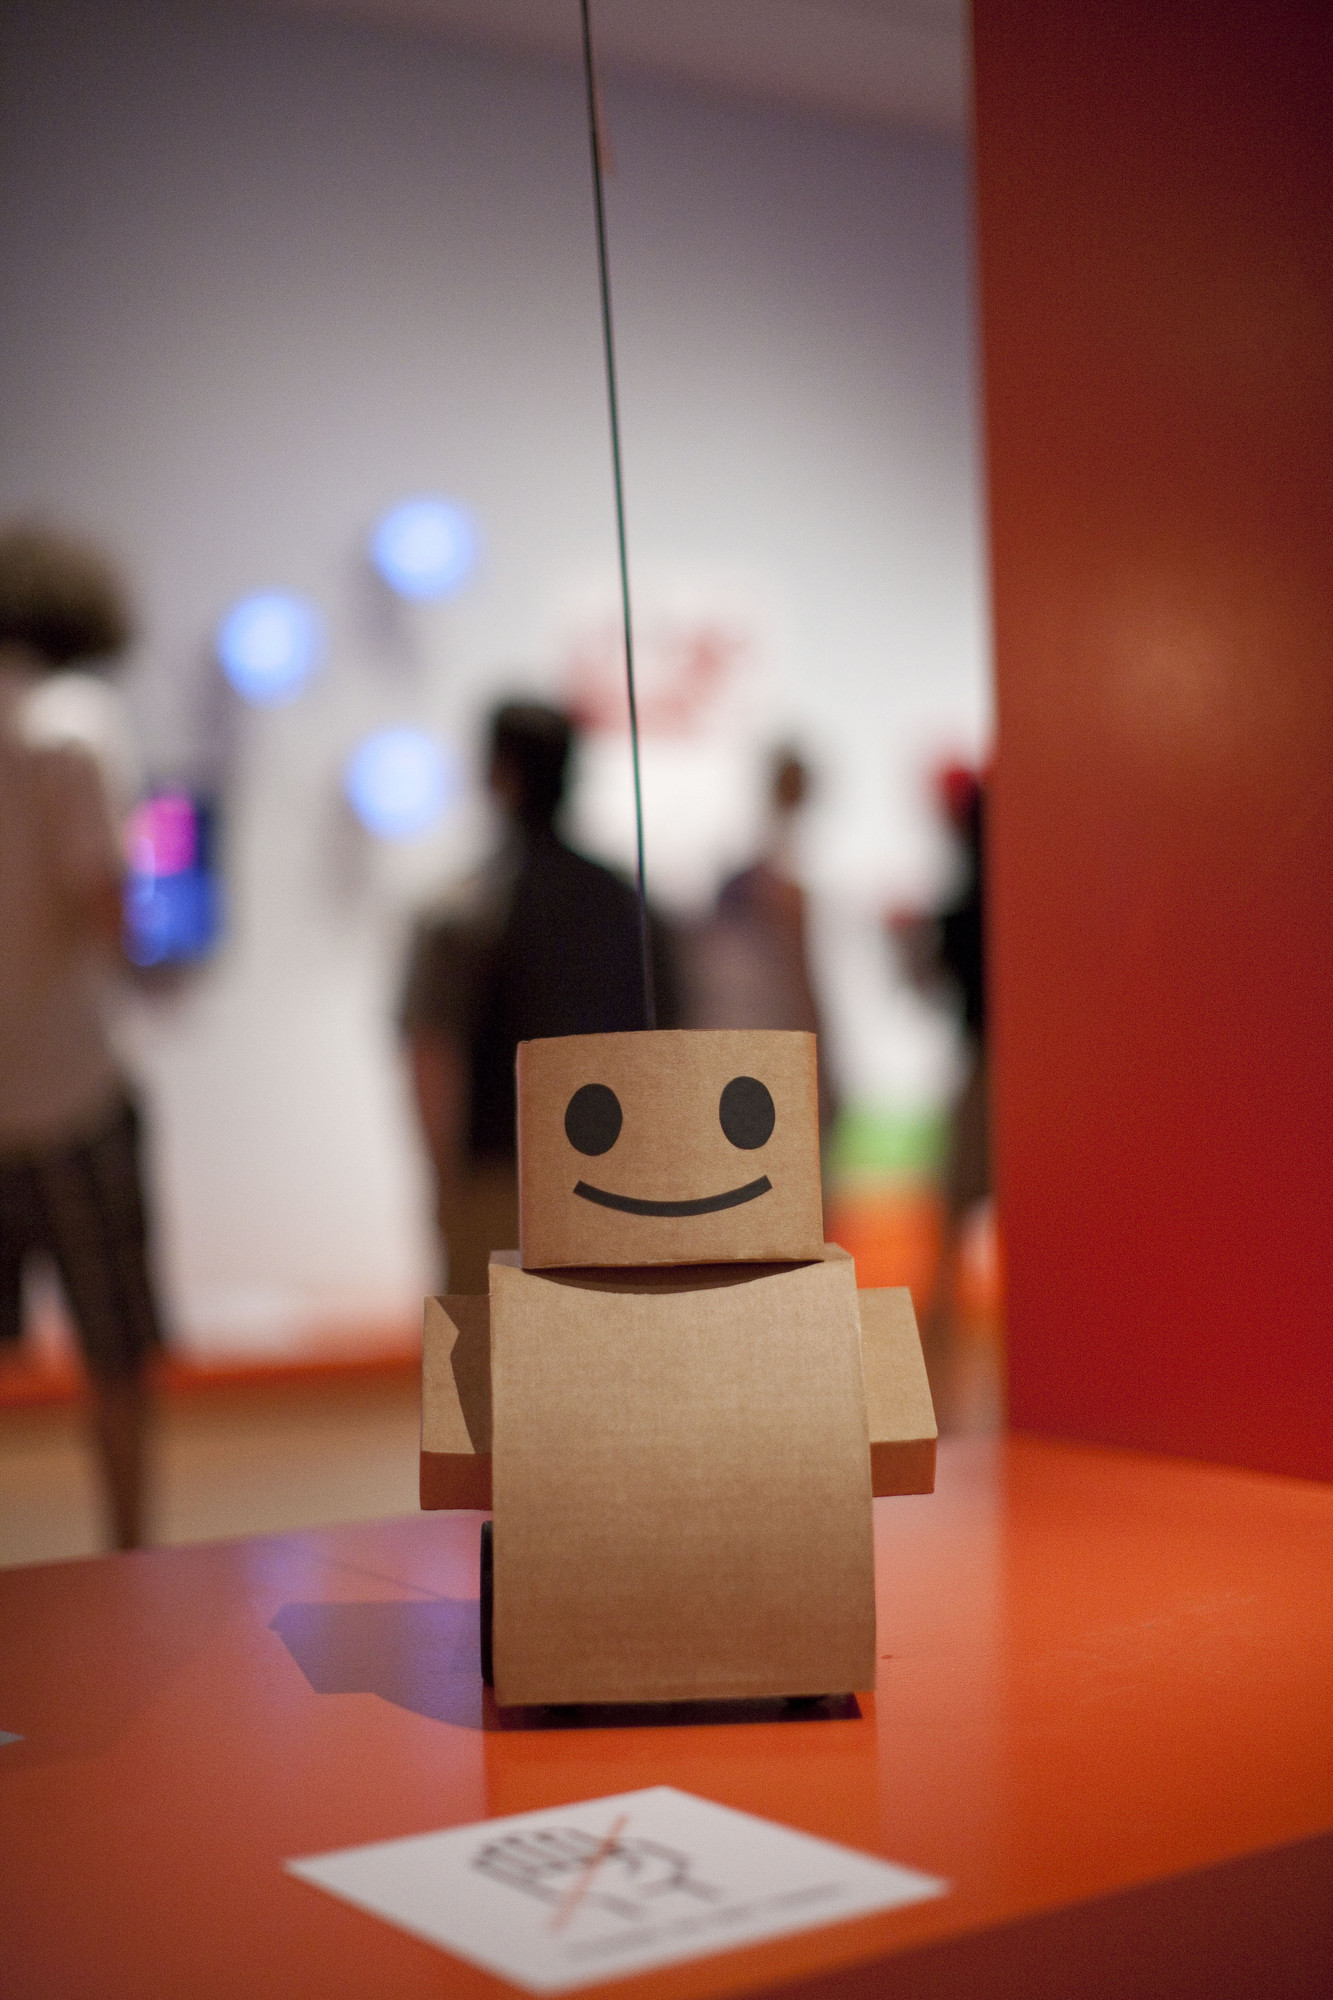 "Kacie Kinzer. Interactive Telecommunications Program, Tisch School of the Arts, New York University. Tweenbot. 2009. Cardboard, paper, ink, batteries, motor, and wheels, 36 x 8 1/2 x 14"" (91.4 x 21.6 x 35.6 cm). Installation view at The Museum of Modern Art, 2011. Photo © Scott Rudd"